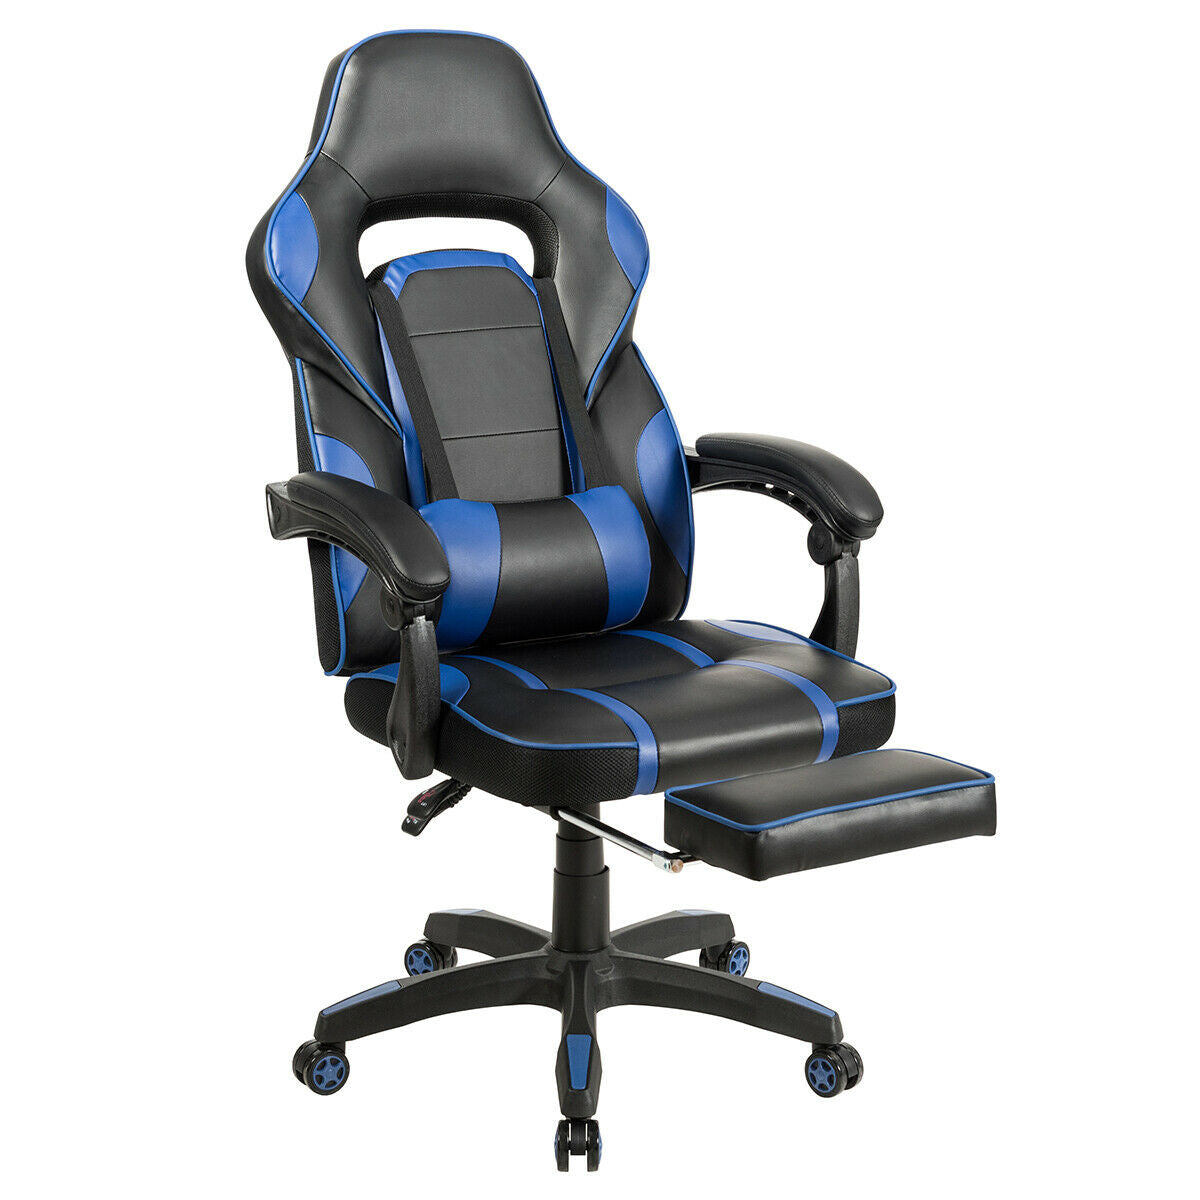 Massage Gaming Chair with Footrest & Lumbar Support-Blue